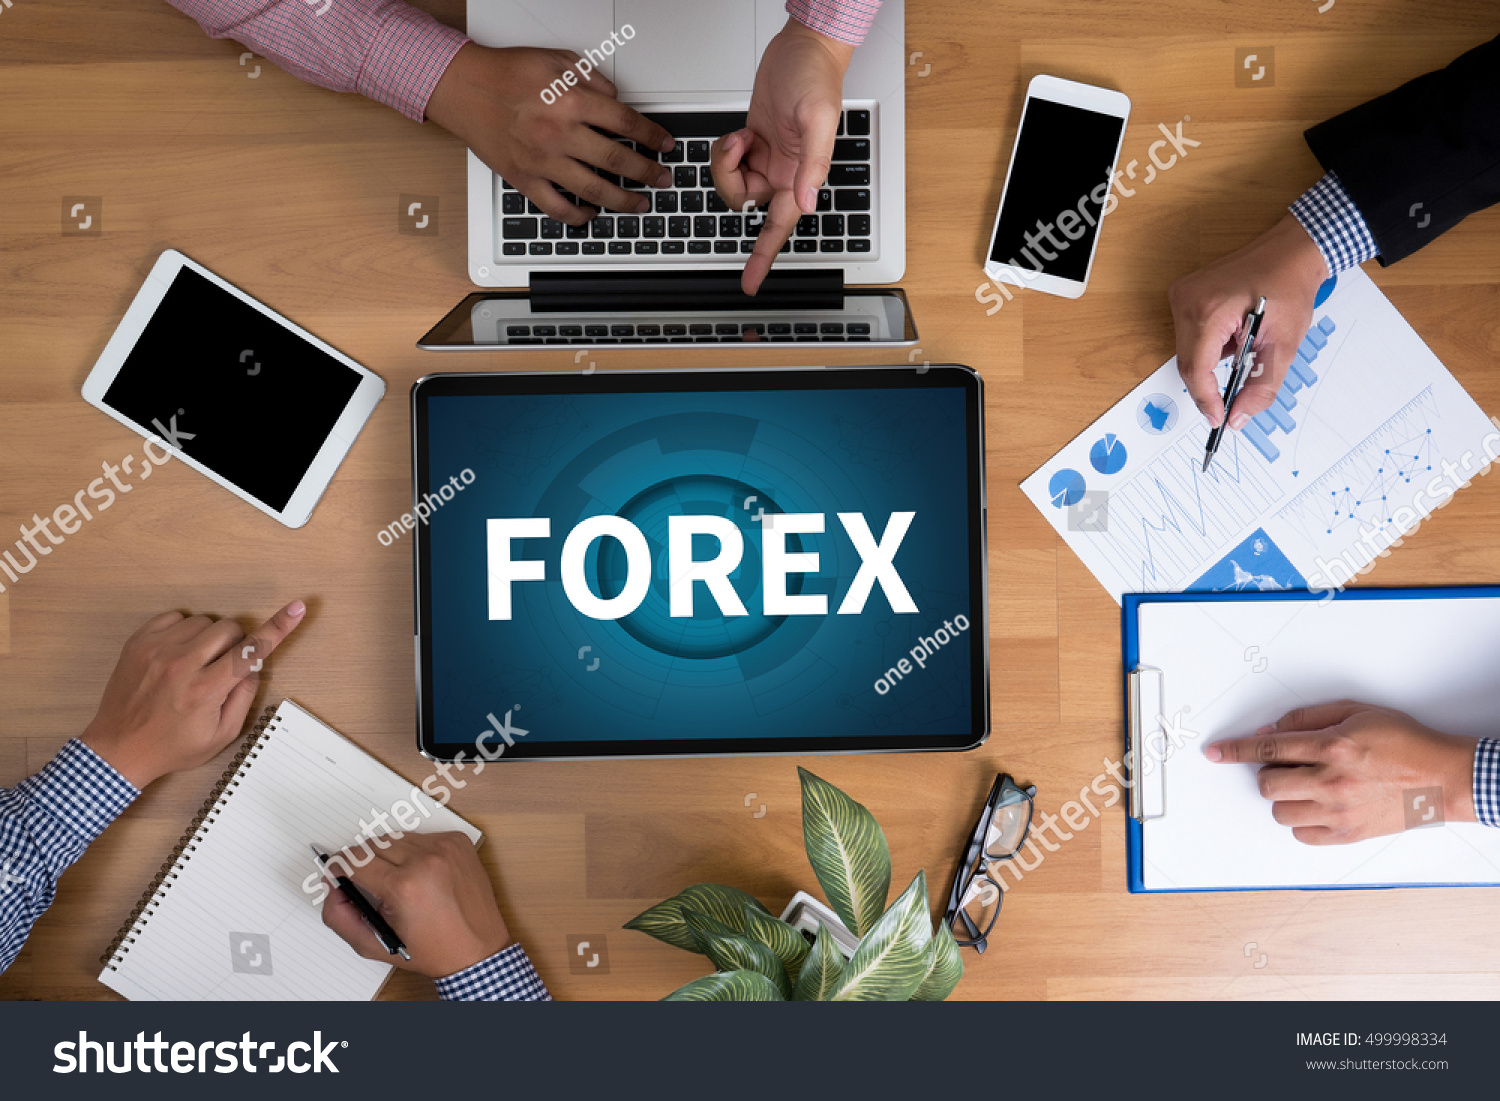 Forex ibank